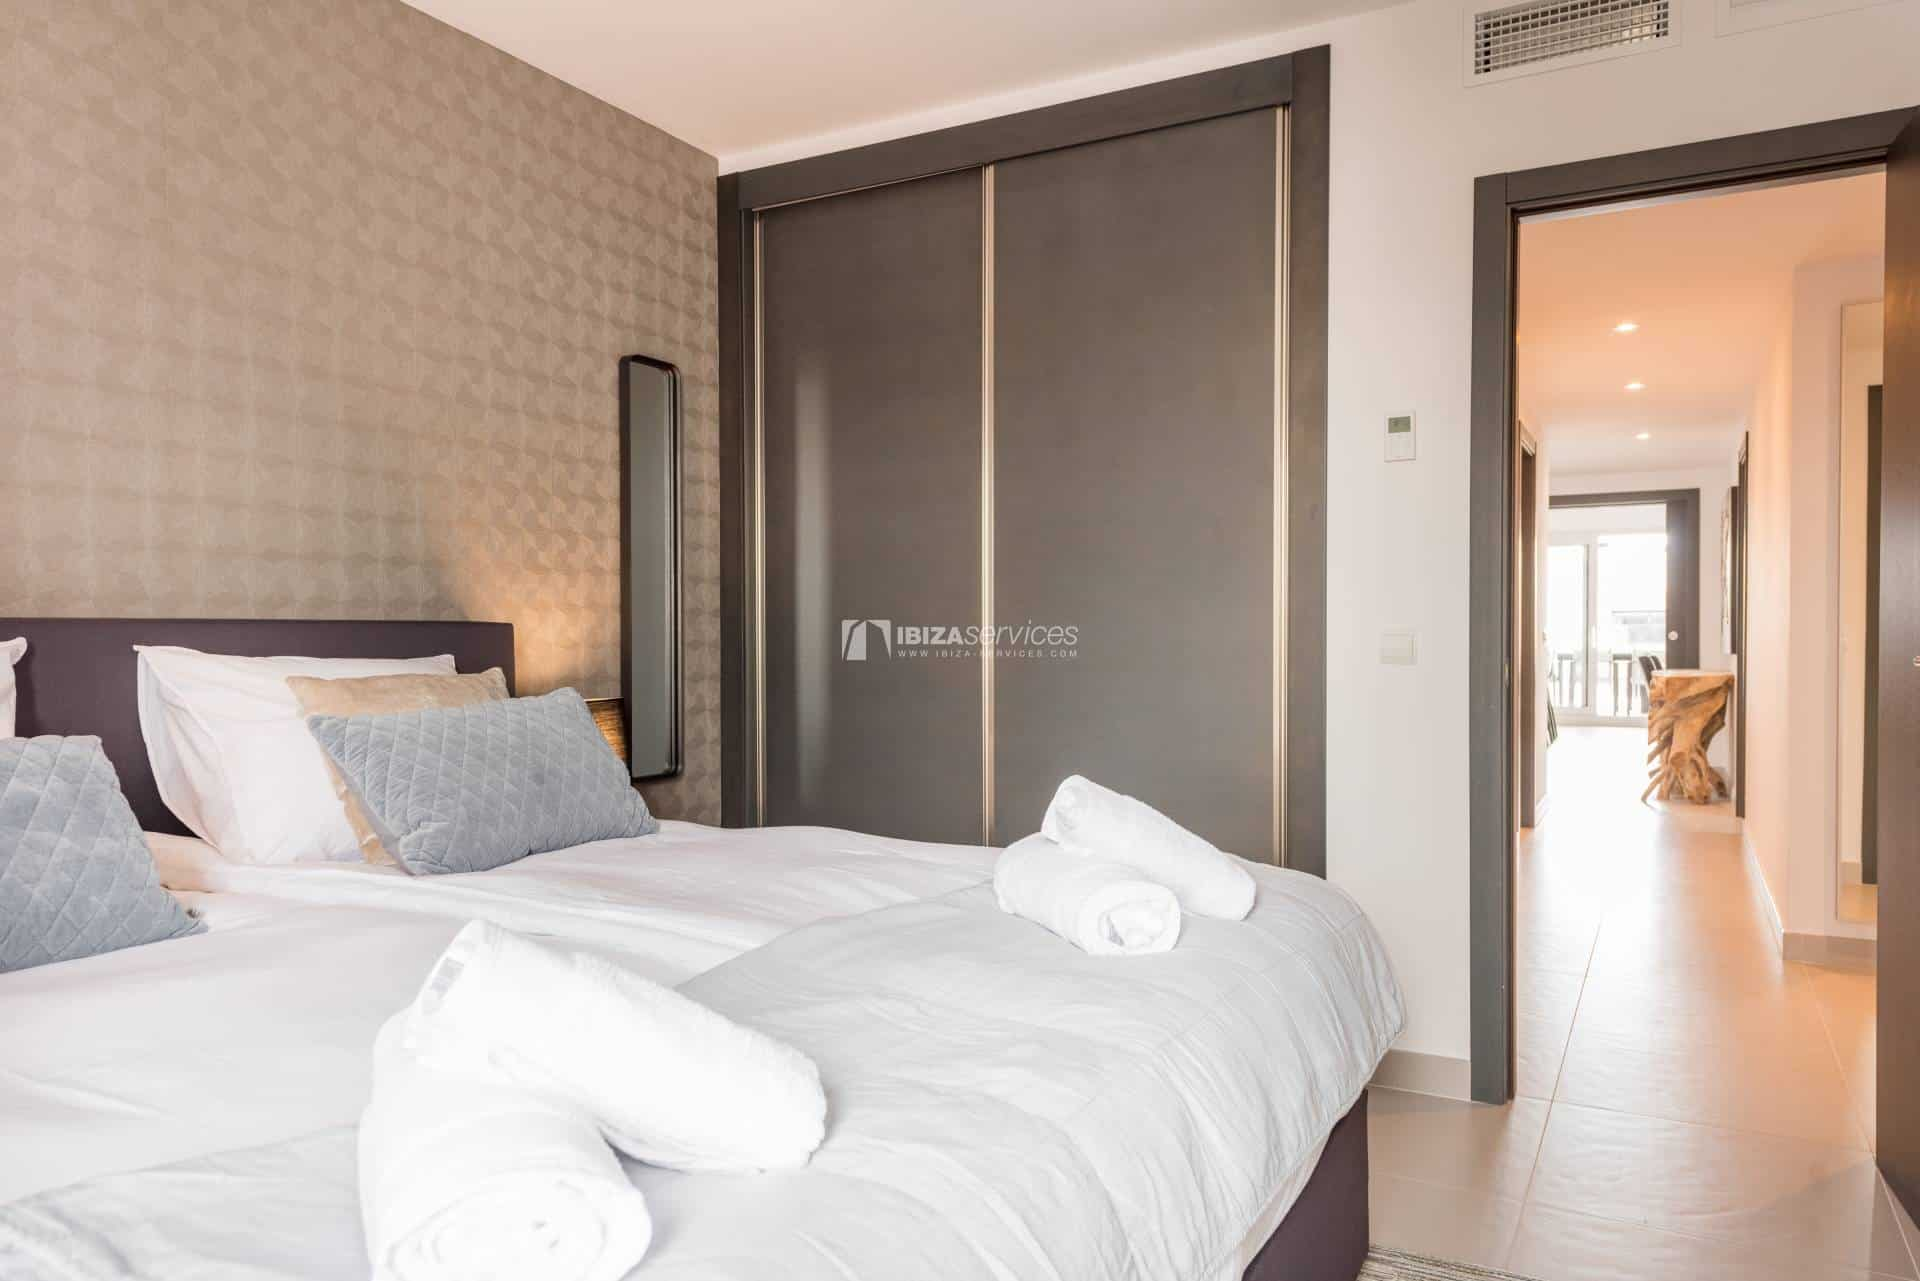 Modern penthouse 4 bedrooms for sale Jesus perspectiva 18